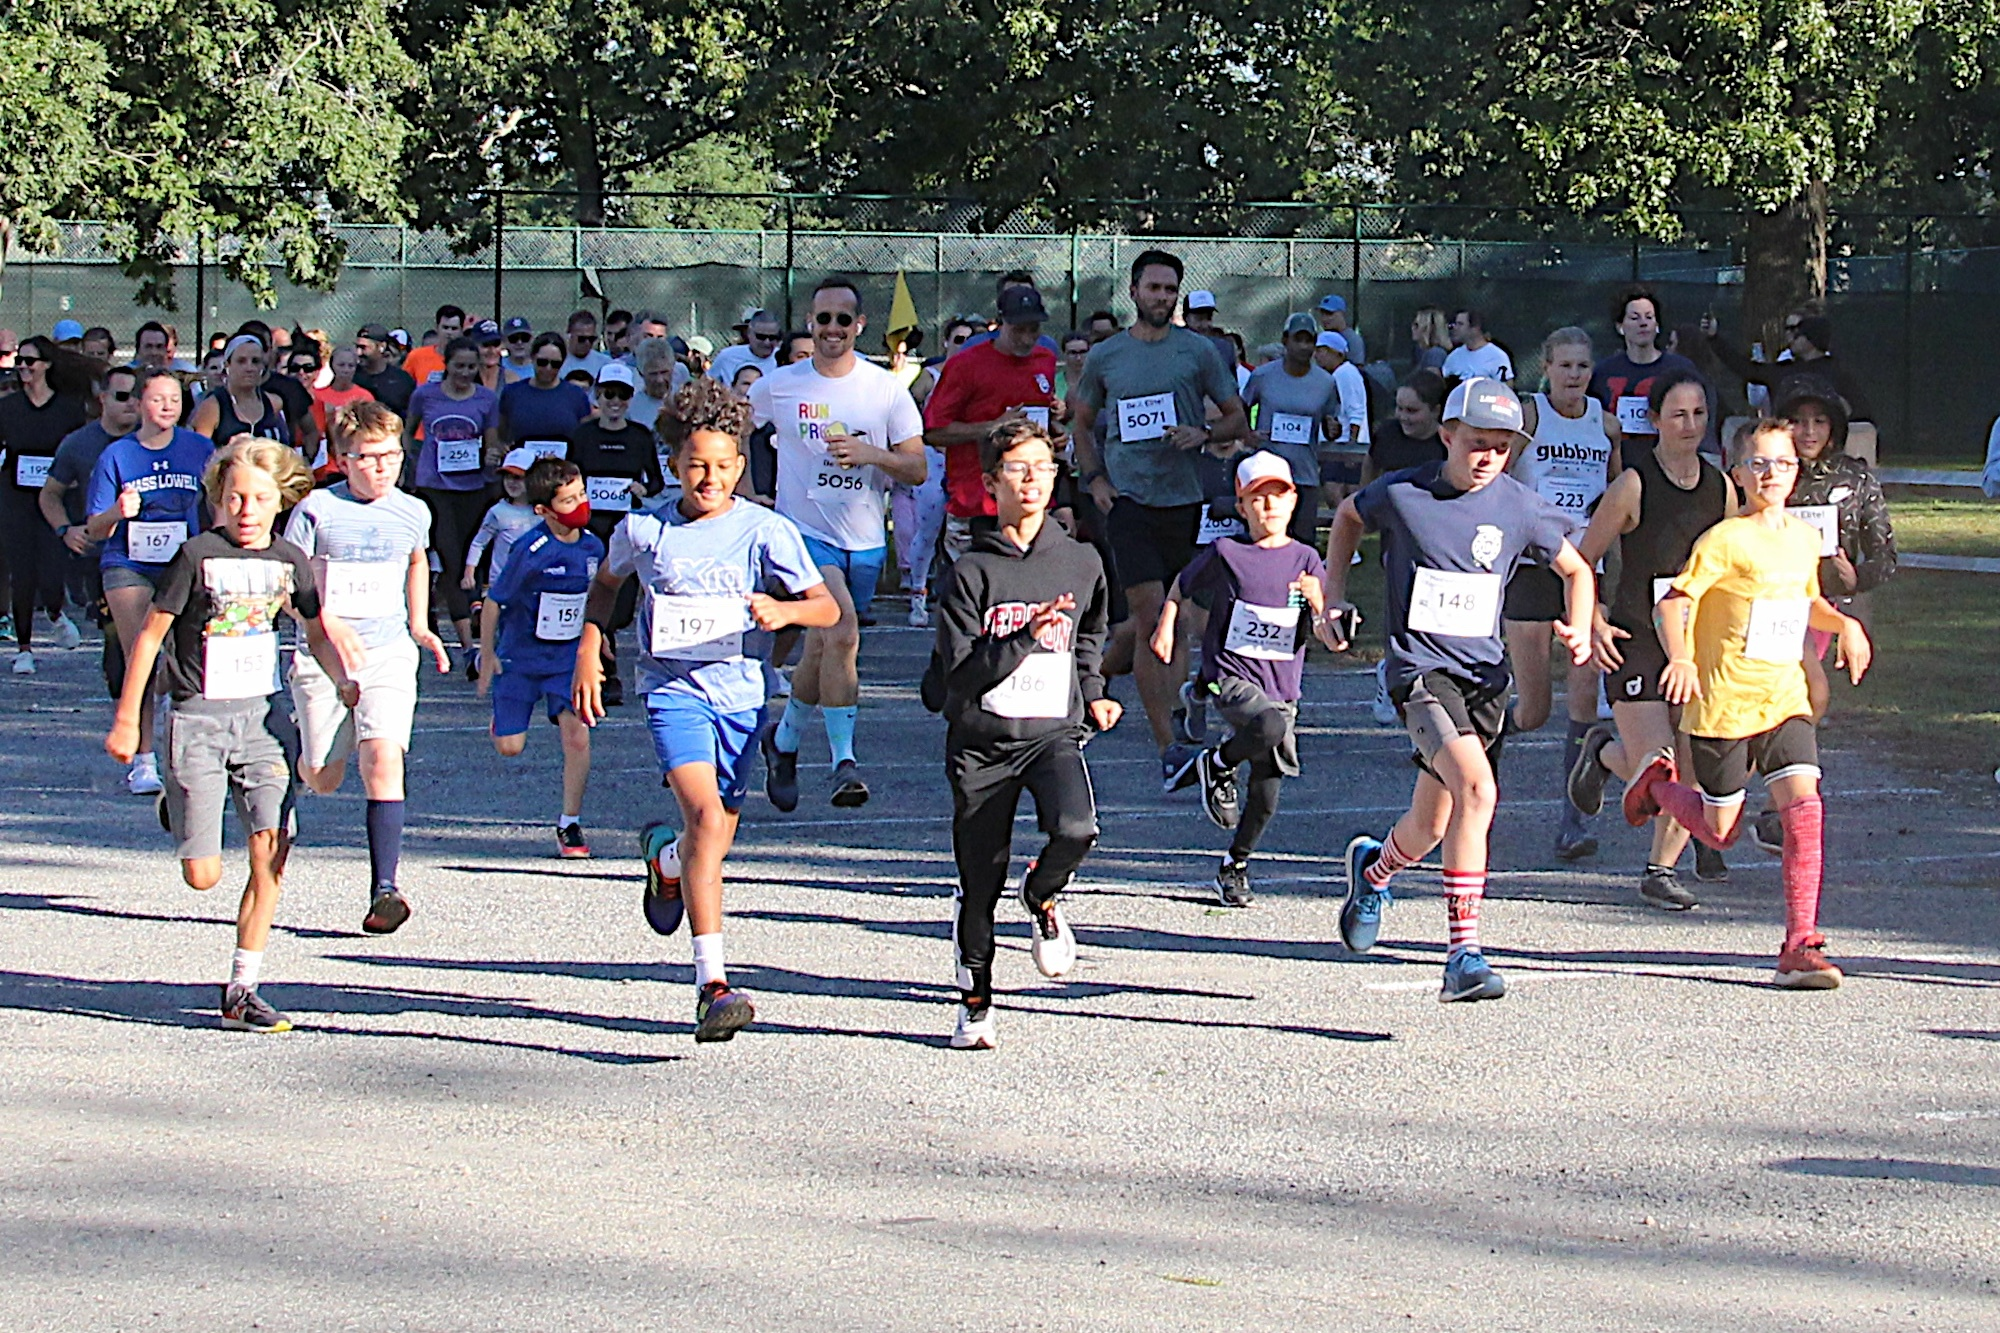 Runners enjoy the first ever Mashashimuet Park Friends and Family 5K Run in Sag Harbor on Saturday.